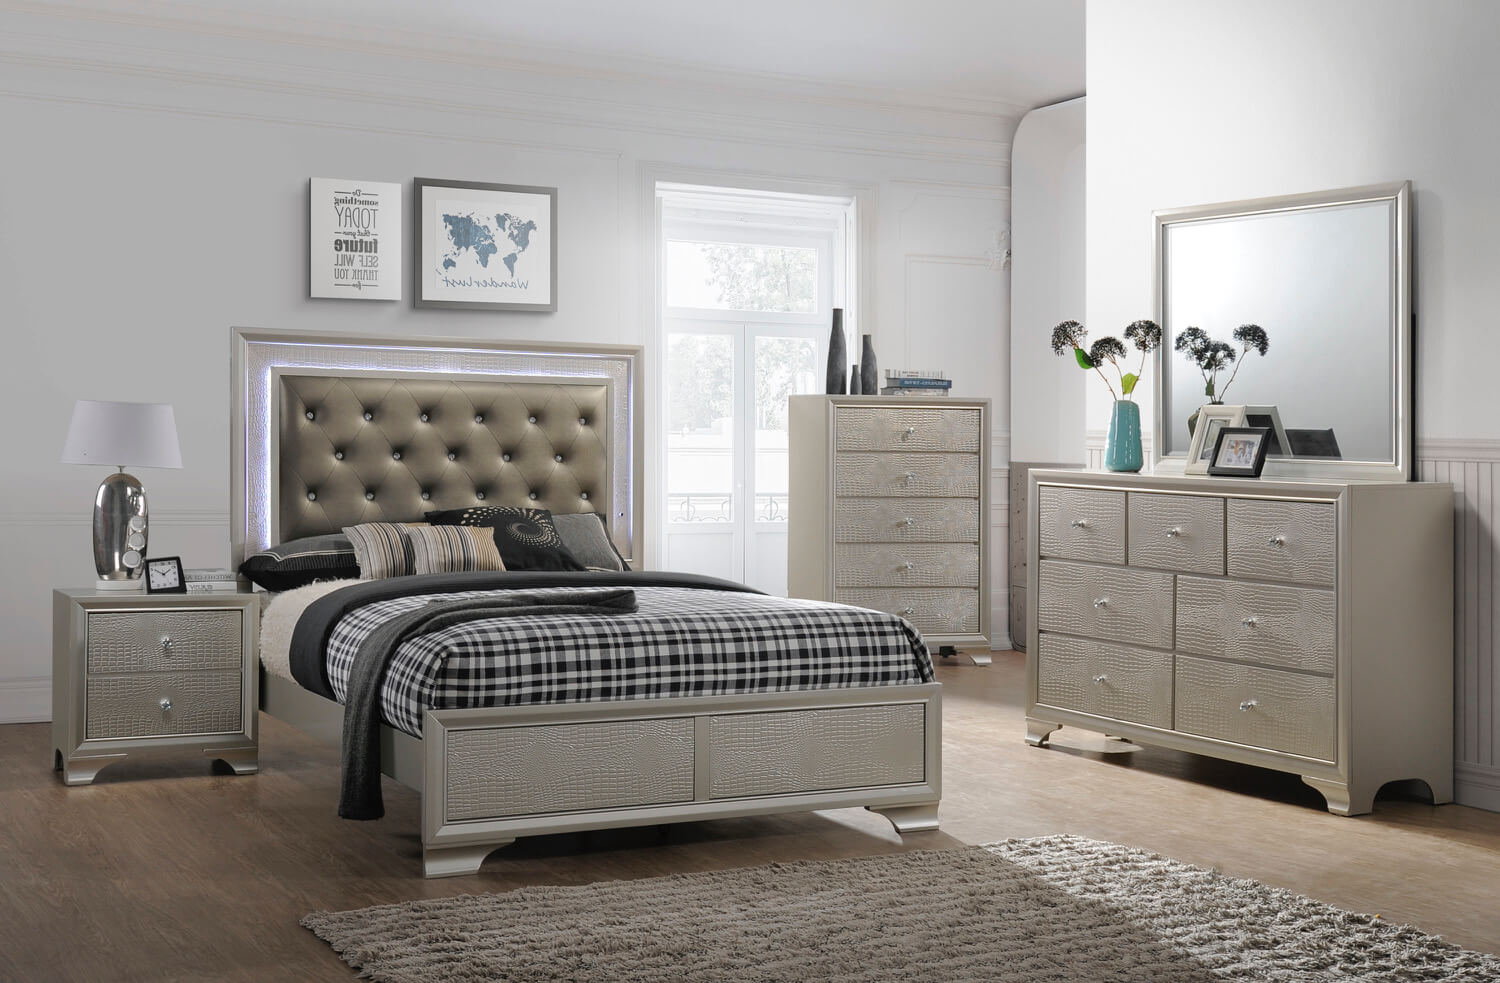 Lyssa led glam bedroom furniture sets